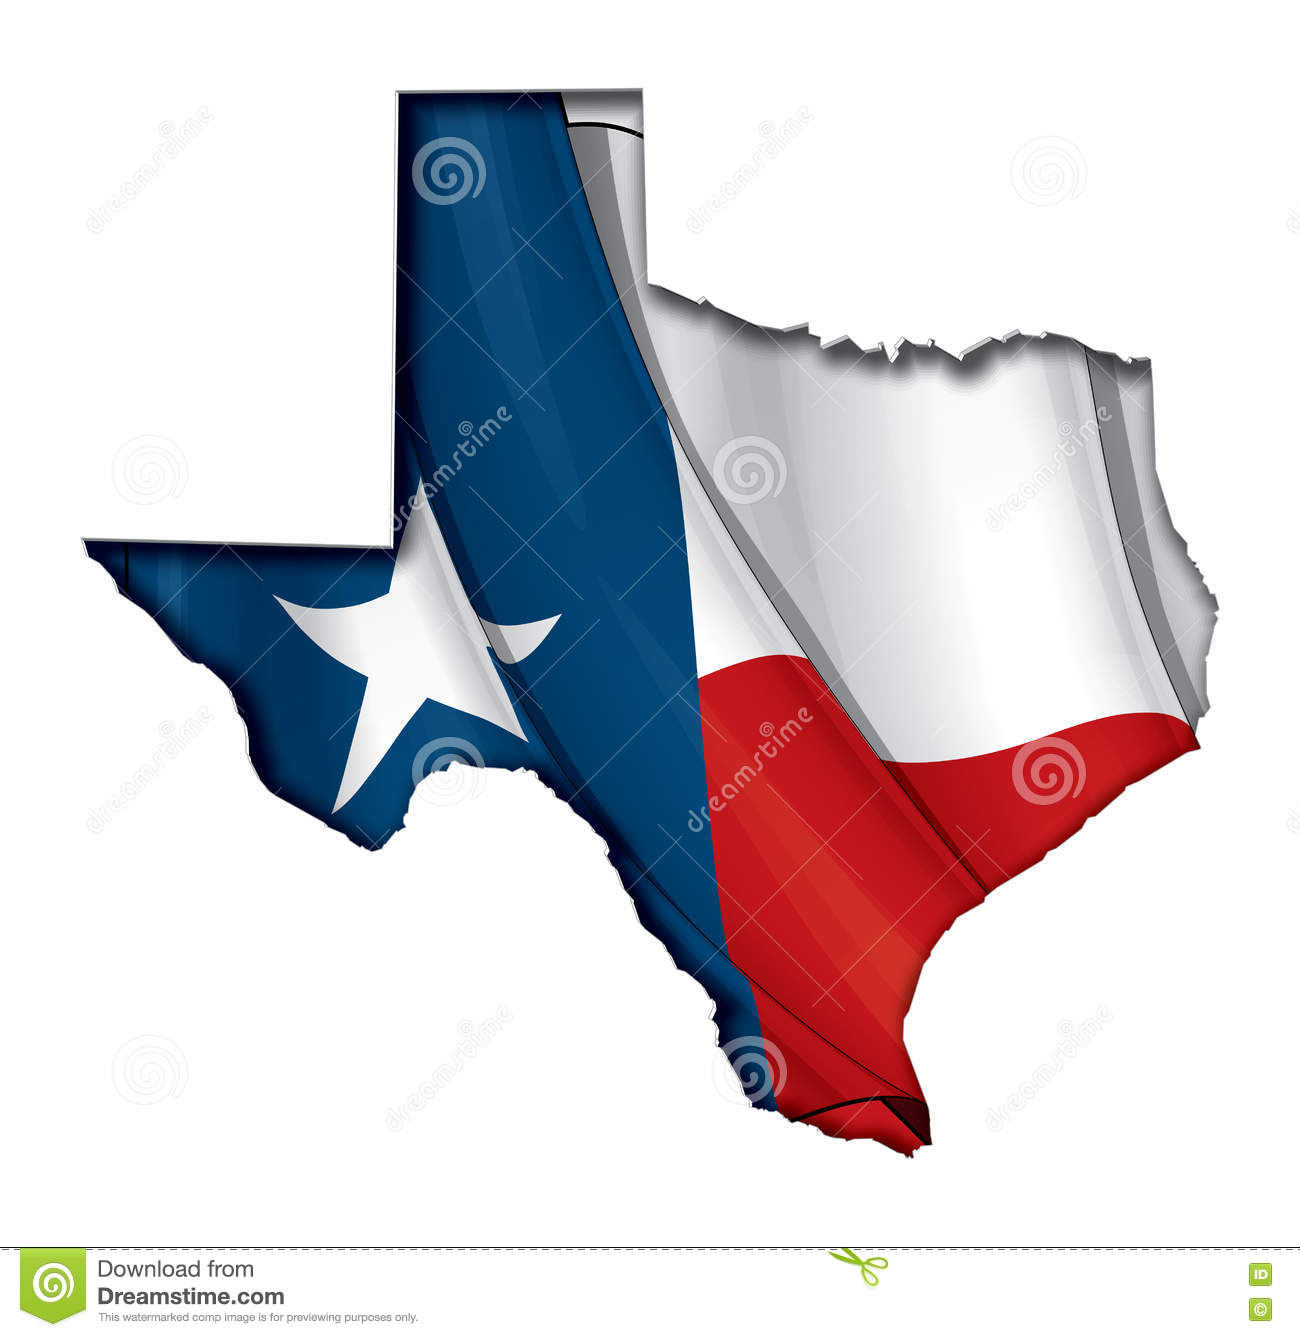 Sombra de Texas Cut Out Map Inner con la bandera debajo